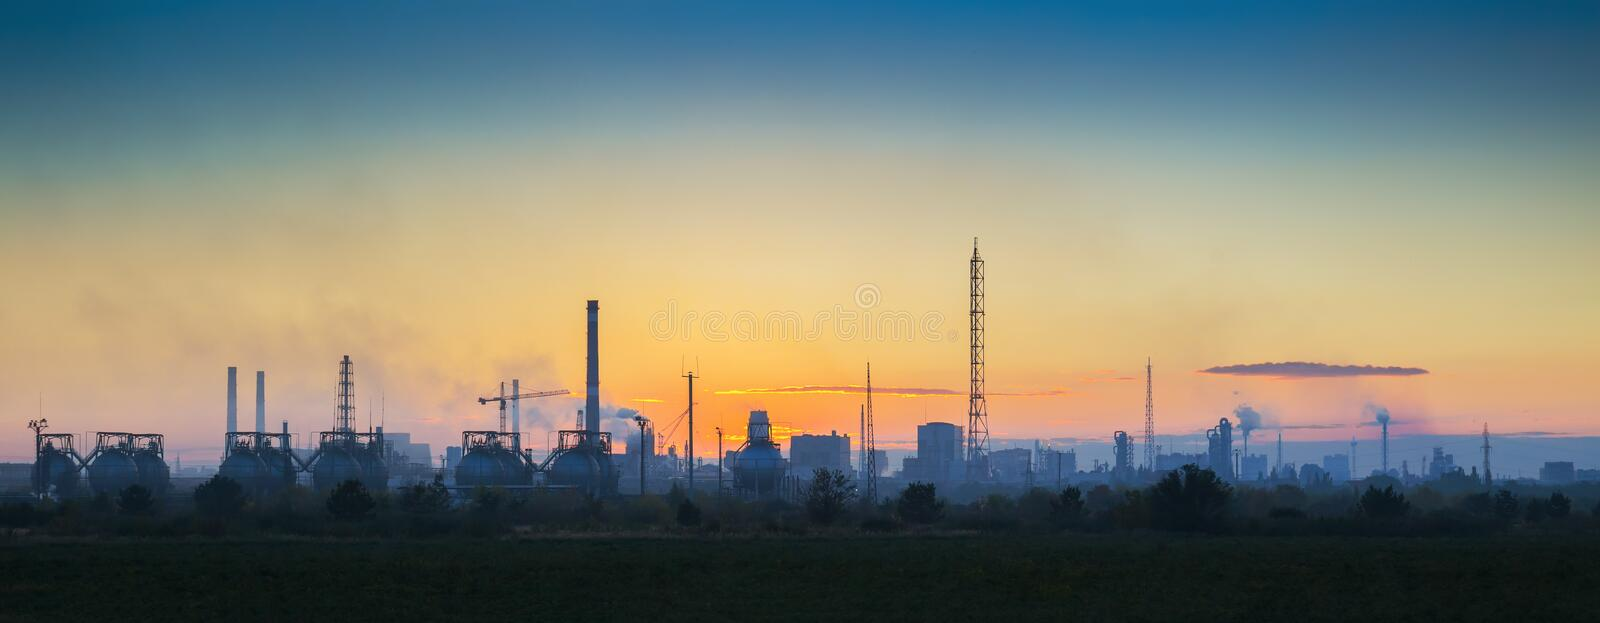 Industrial landscape at sunset royalty free stock photos